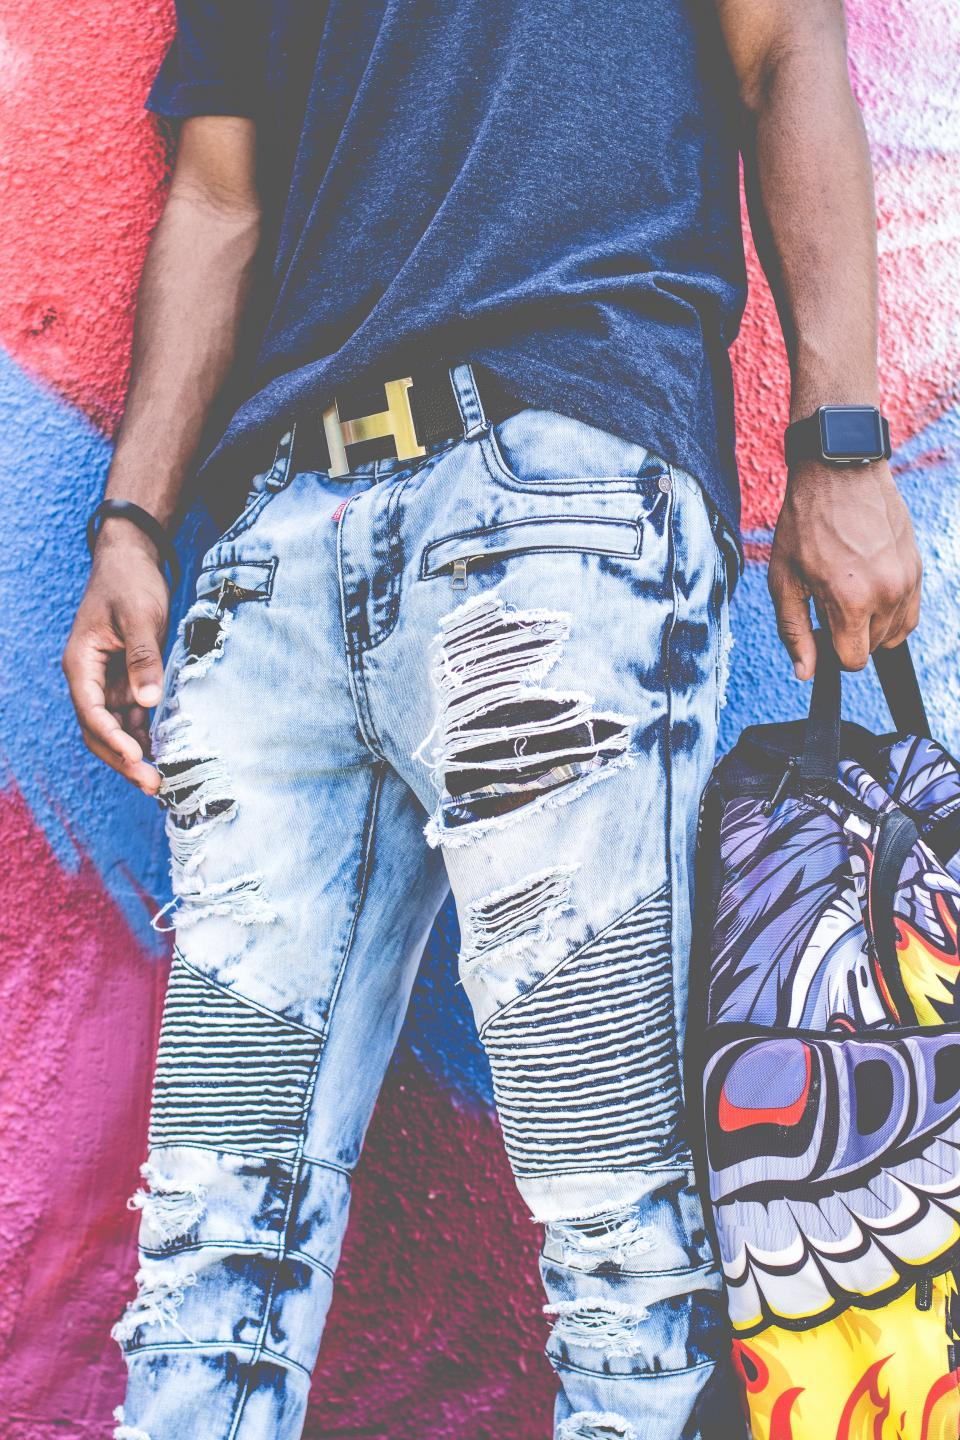 guy man fashion ripped jeans colorful wall graffiti art belt hermes watch bag african american clothing